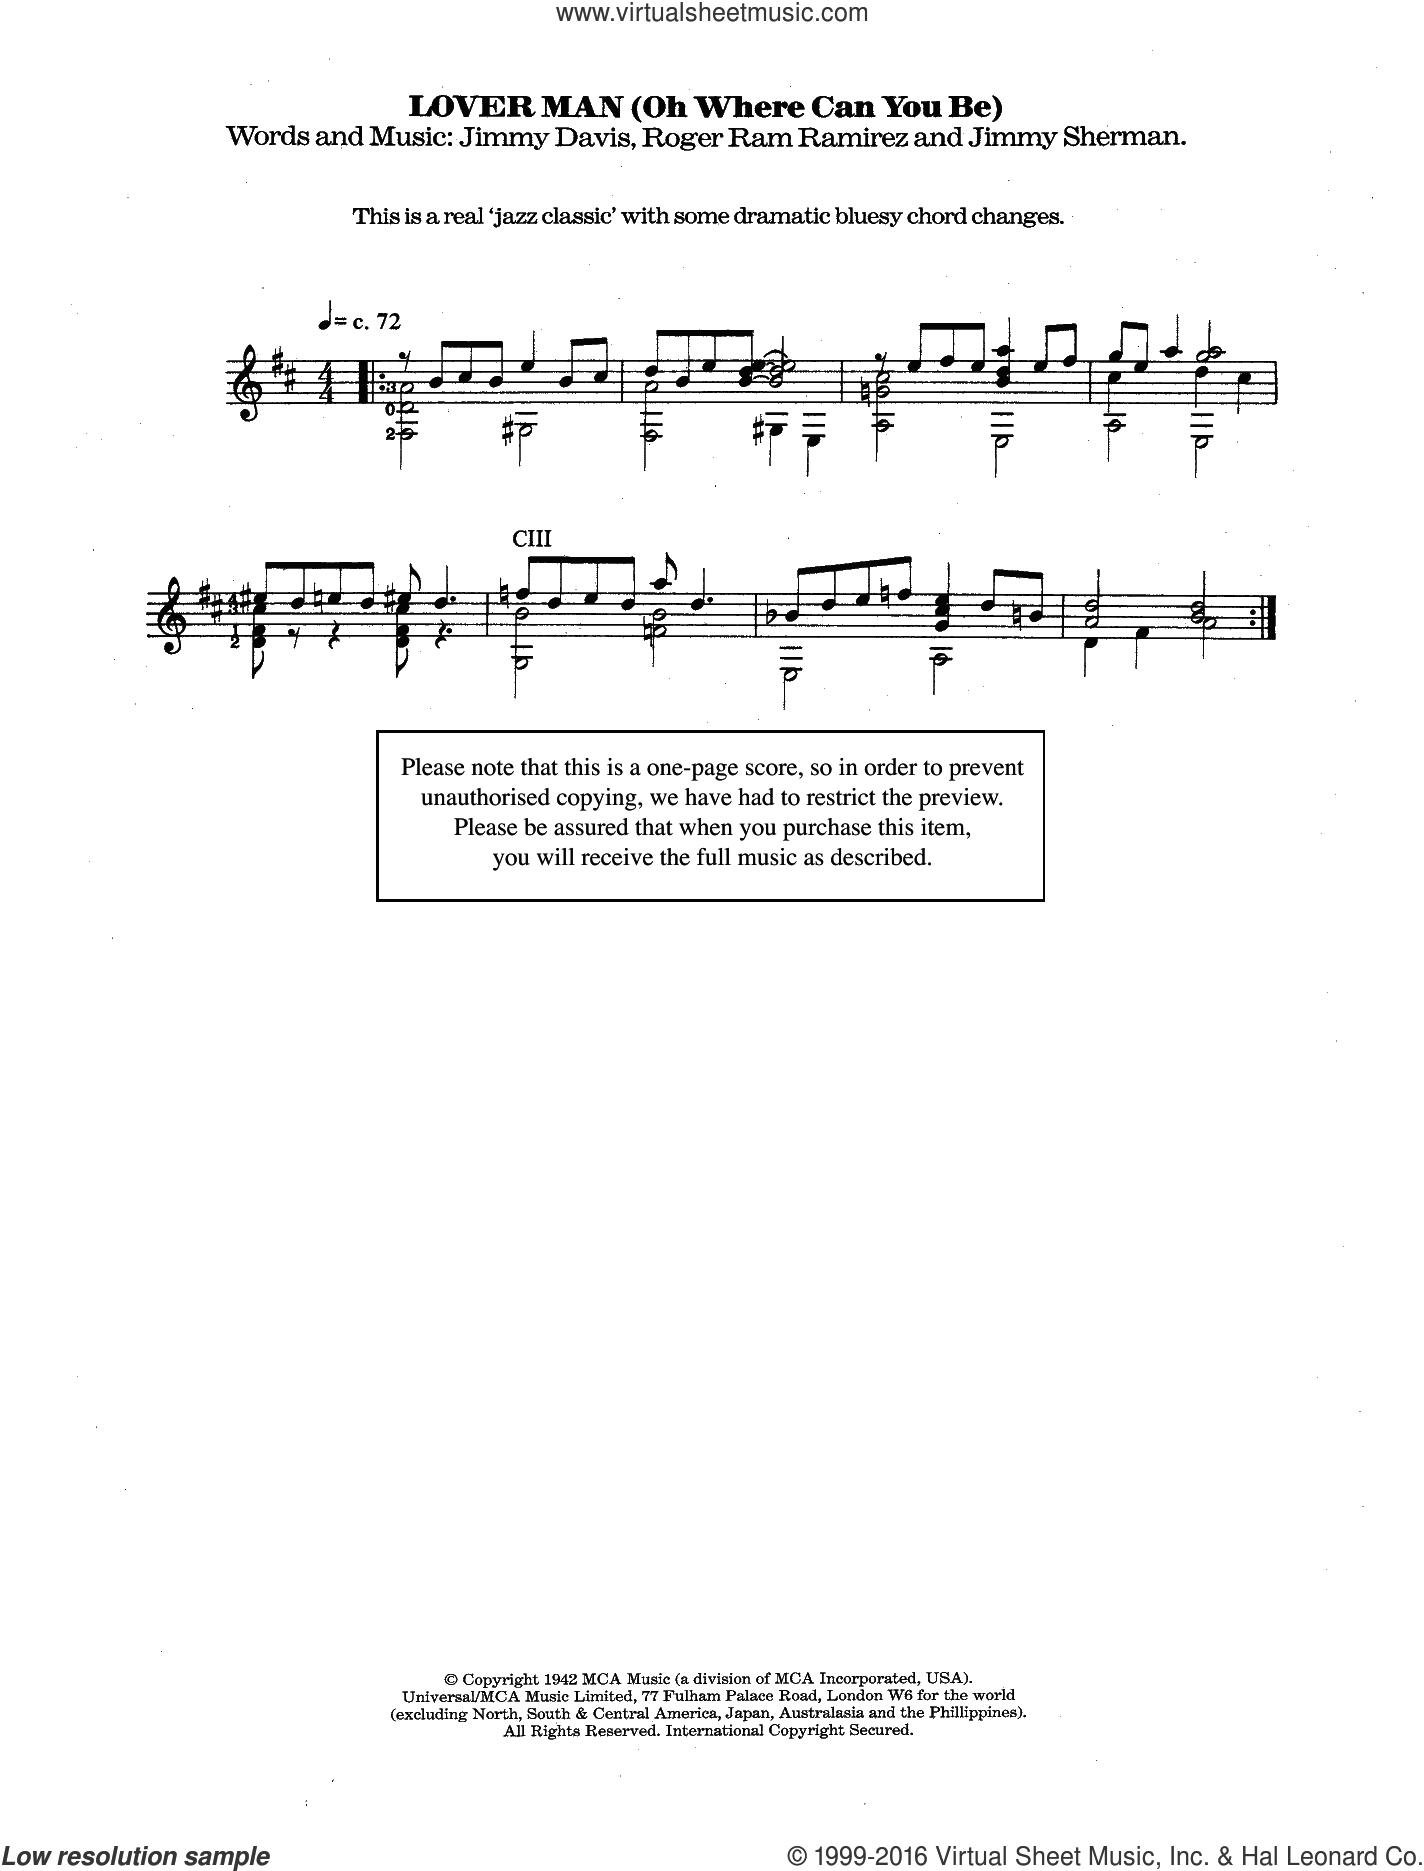 Lover Man (Oh, Where Can You Be?) sheet music for guitar solo (chords) by Jimmie Davis, Billie Holiday and Roger Ramirez. Score Image Preview.